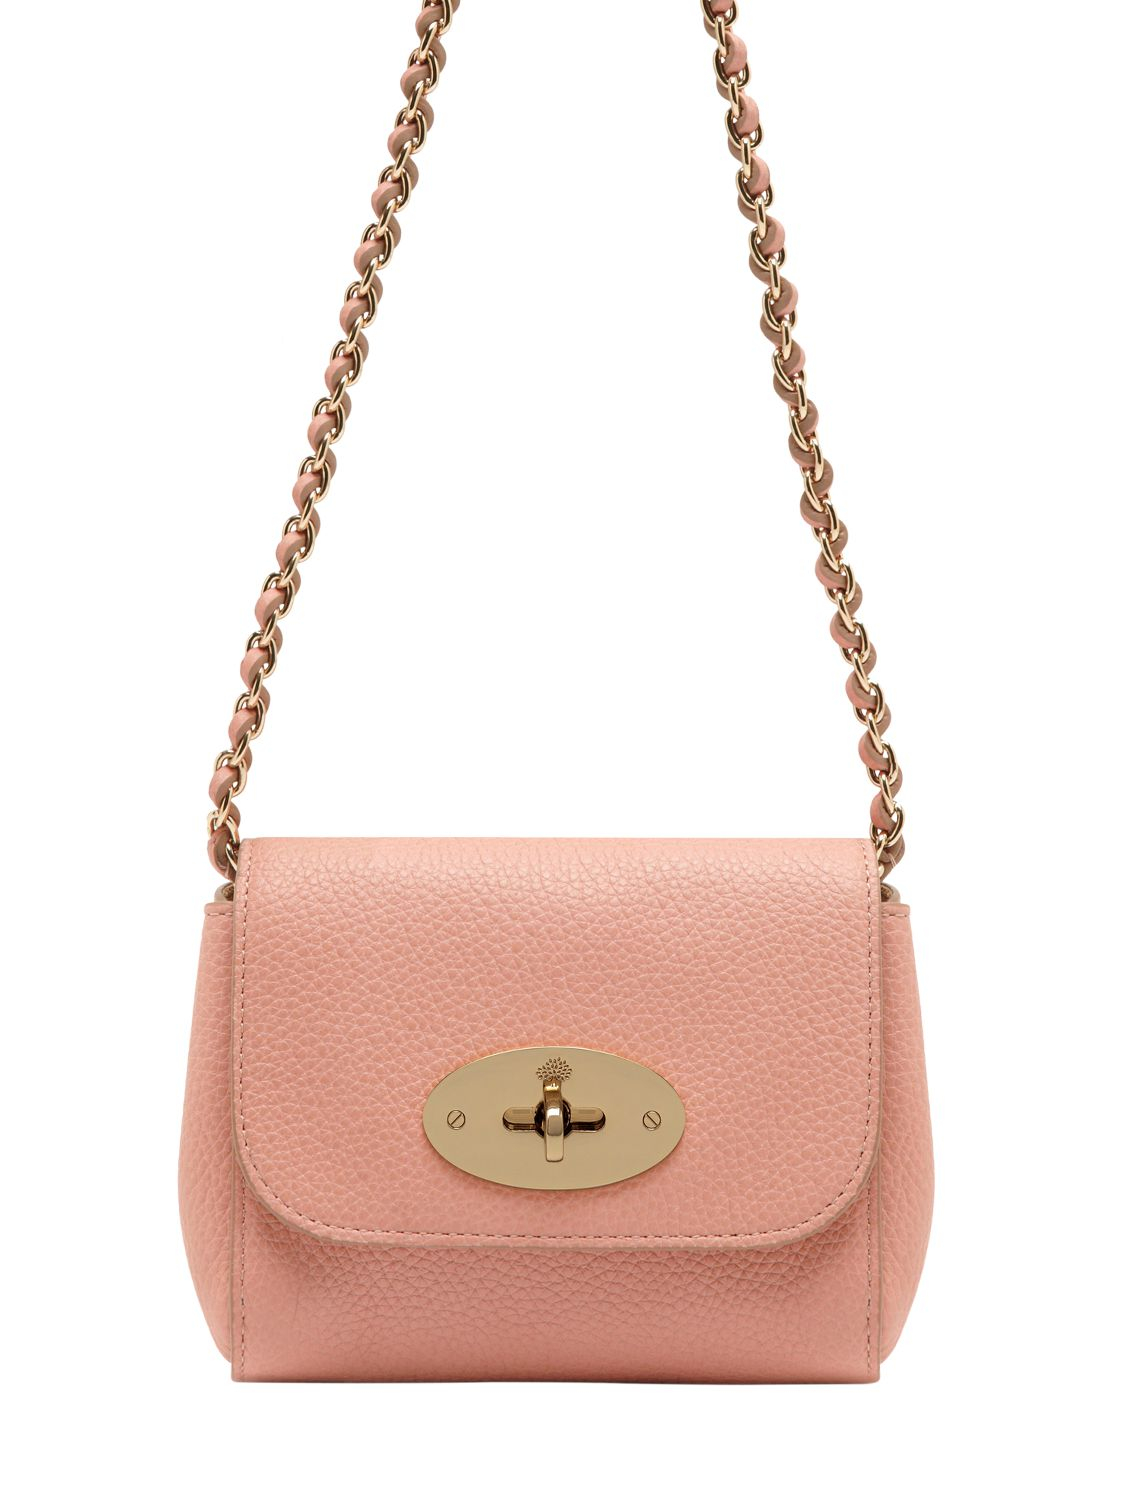 Mulberry Mini Lily Shoulder Bag in Natural